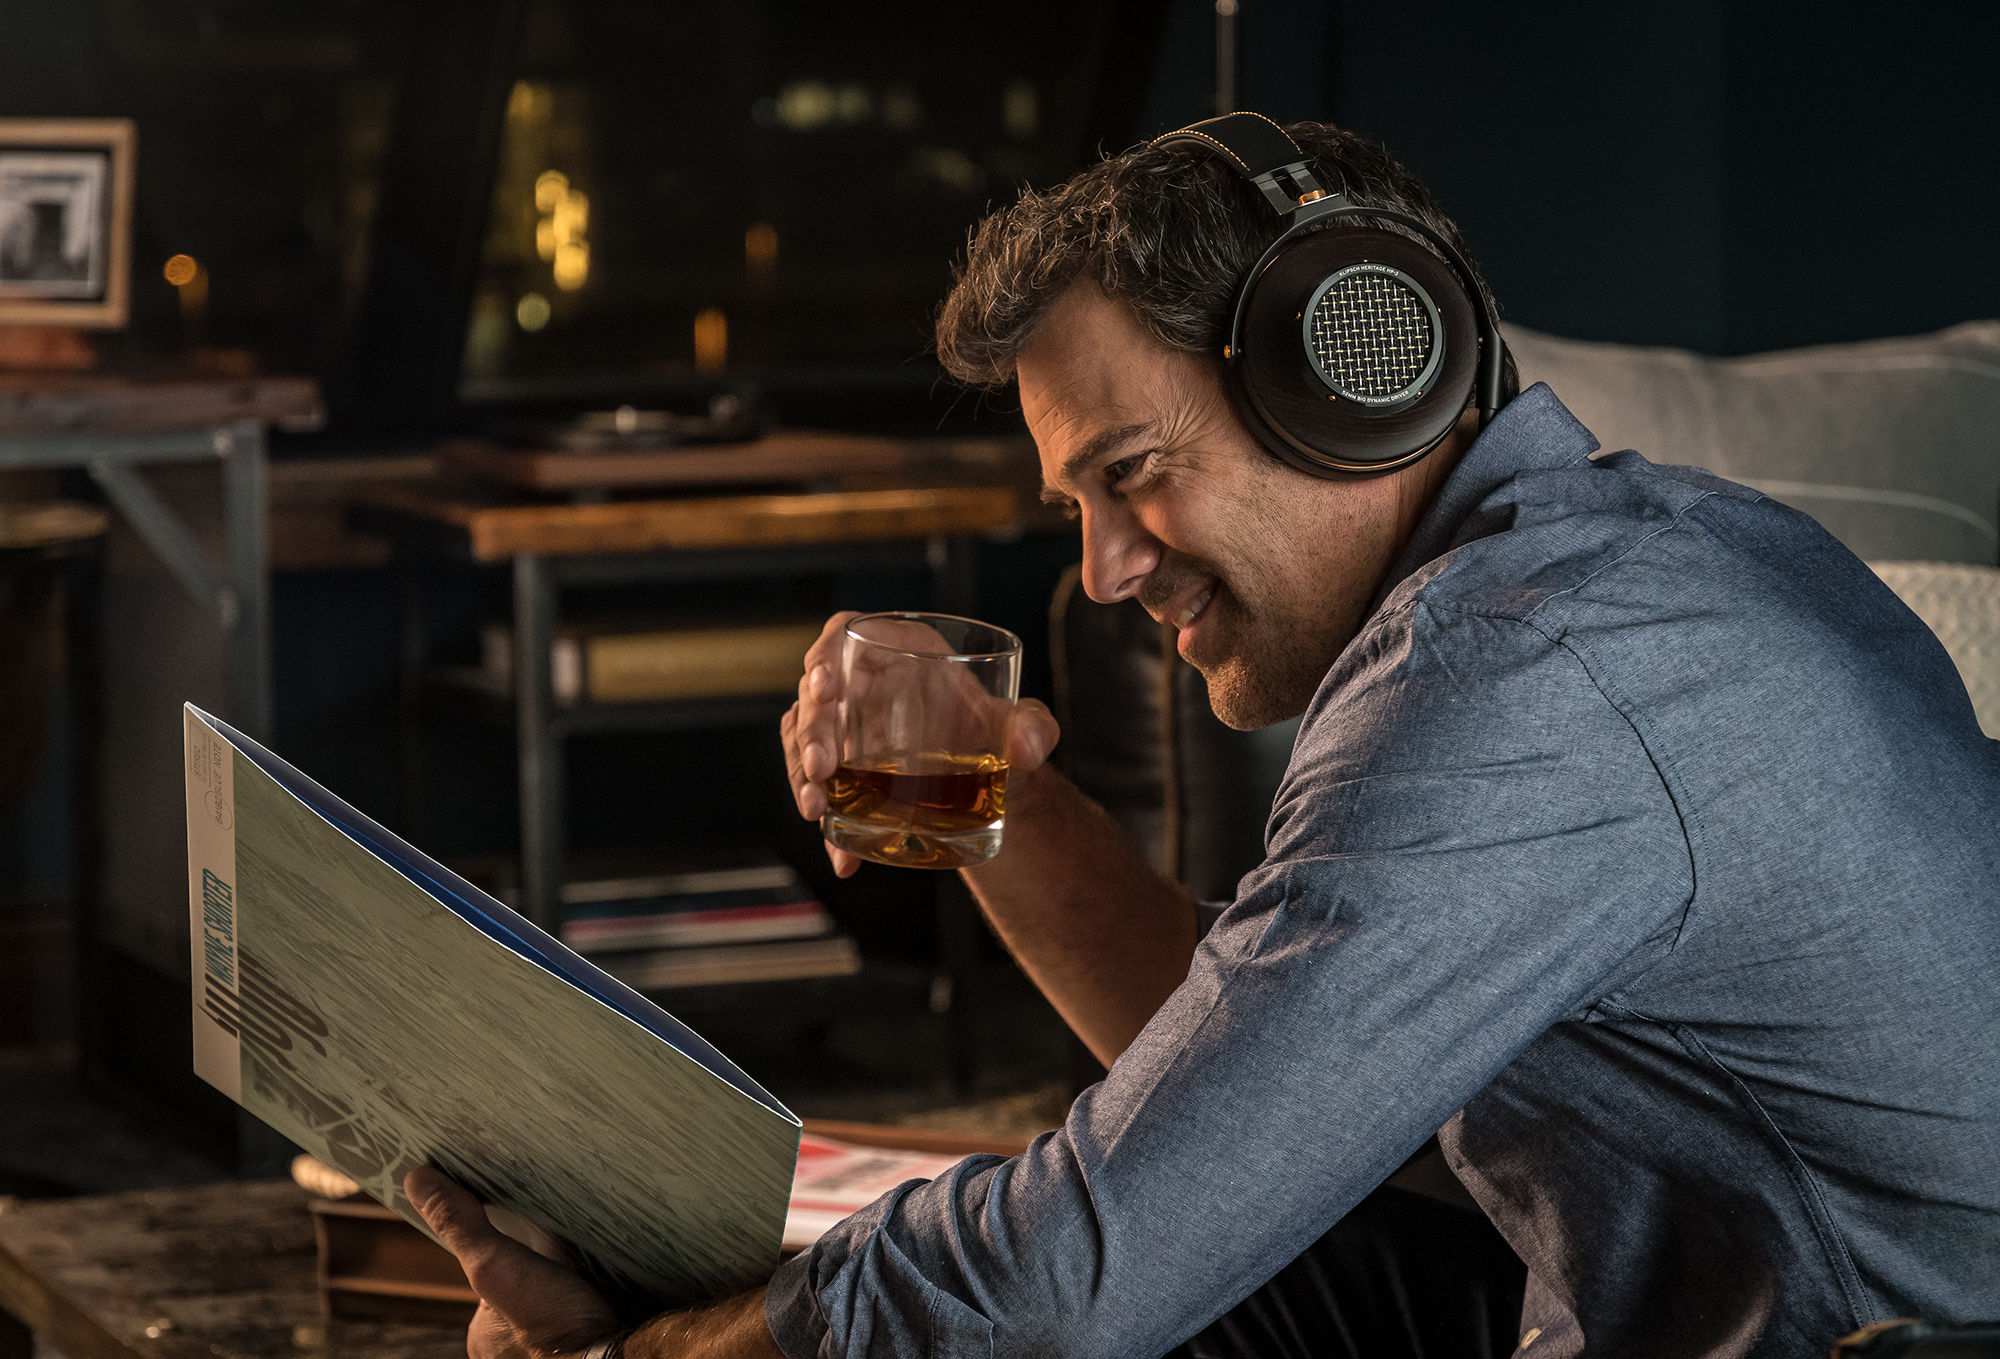 Man drinking scotch and listening to HP-3 Headphones looking at a record